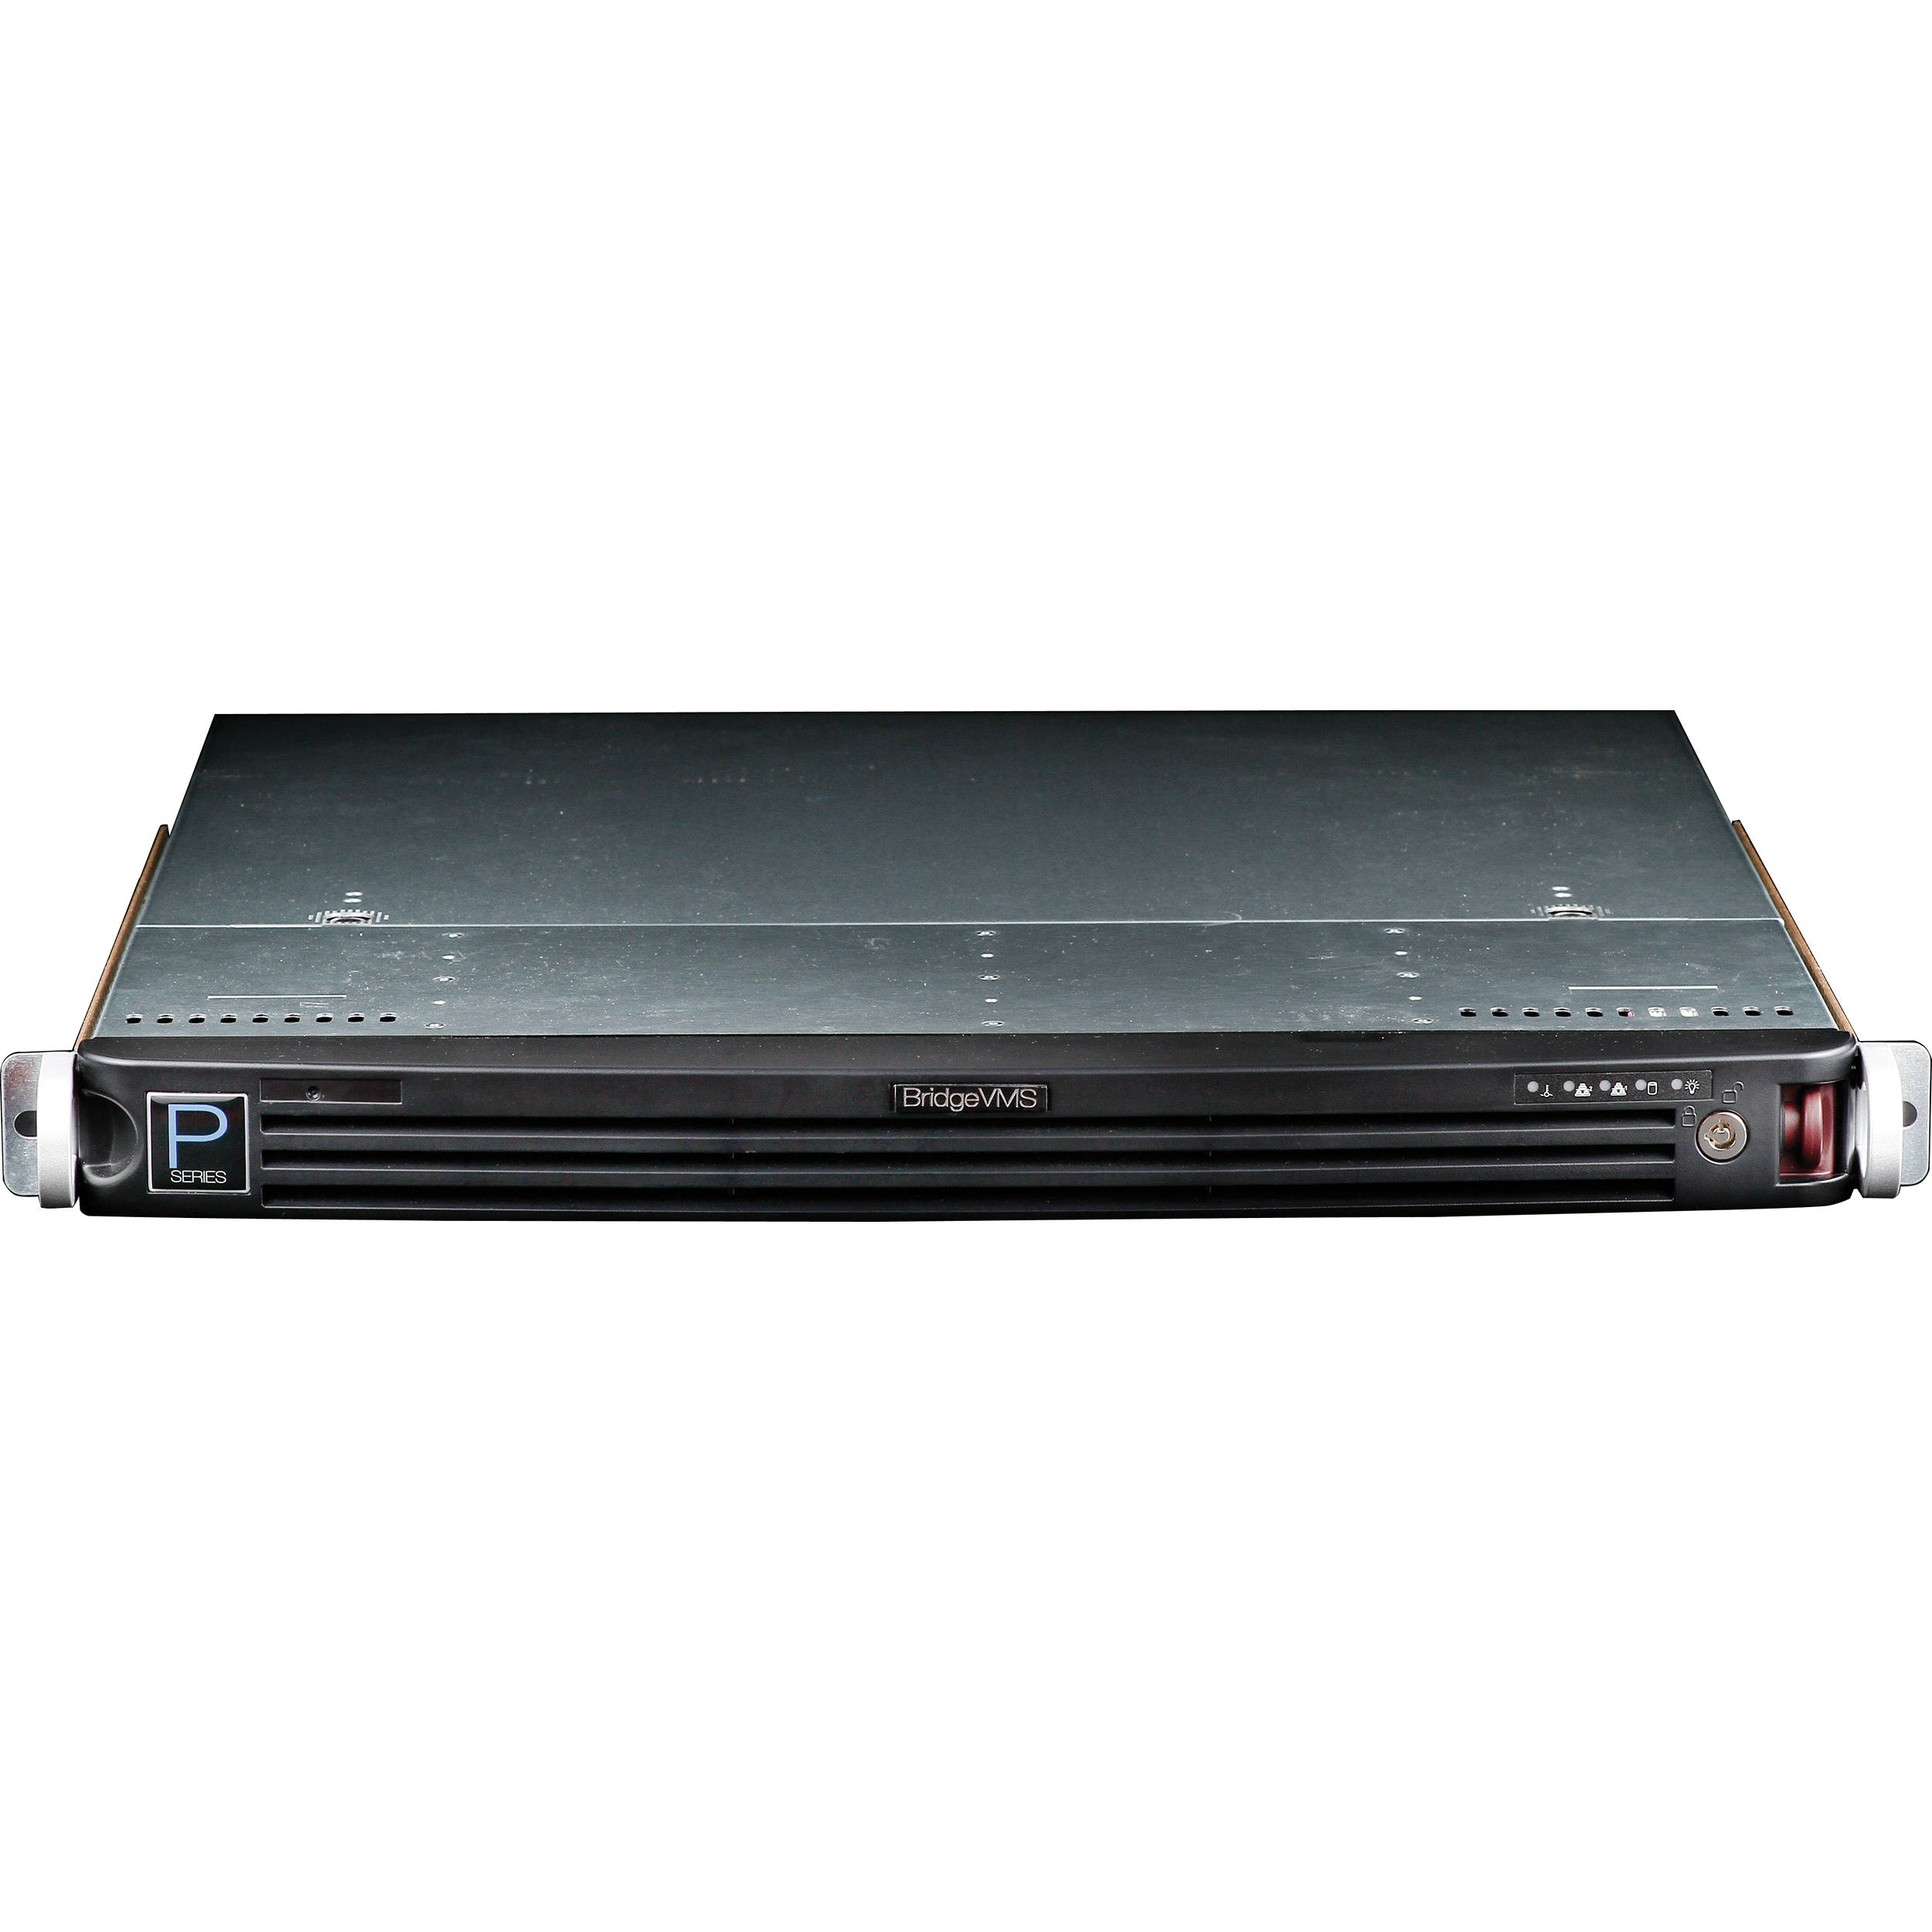 Video Insight Professional 16 Channel Bridgevms Nvr 4tb